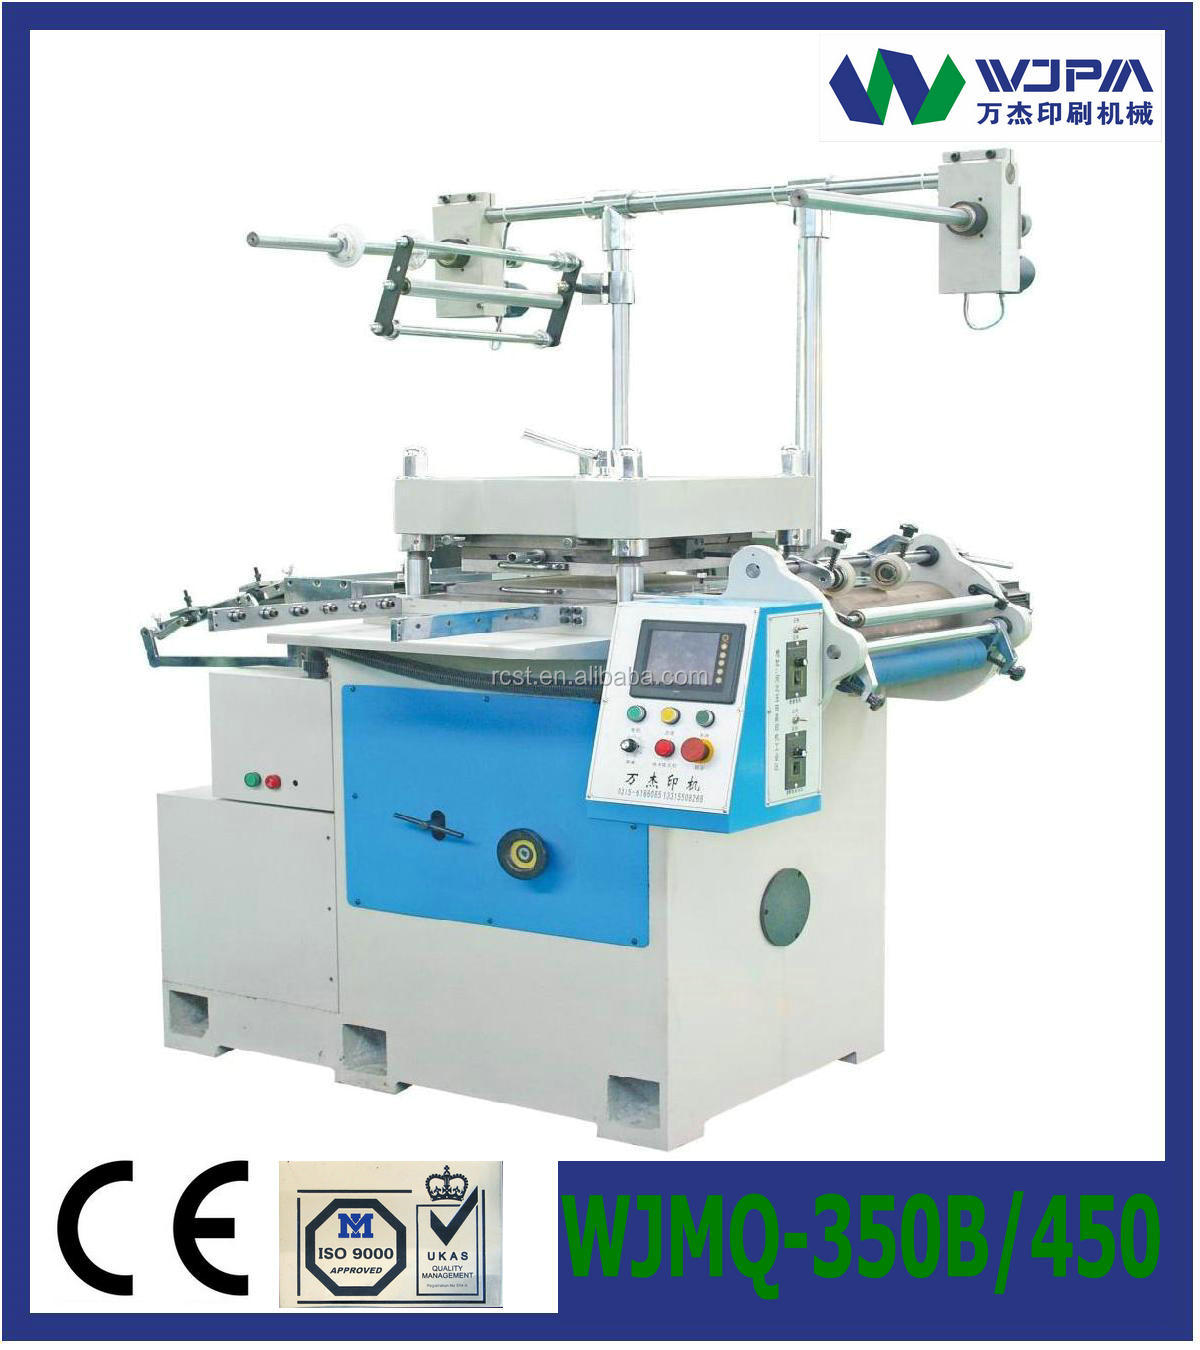 WJBQ 4230/4210/4180 Mechanical Flat-bed Label Prinitng Machine